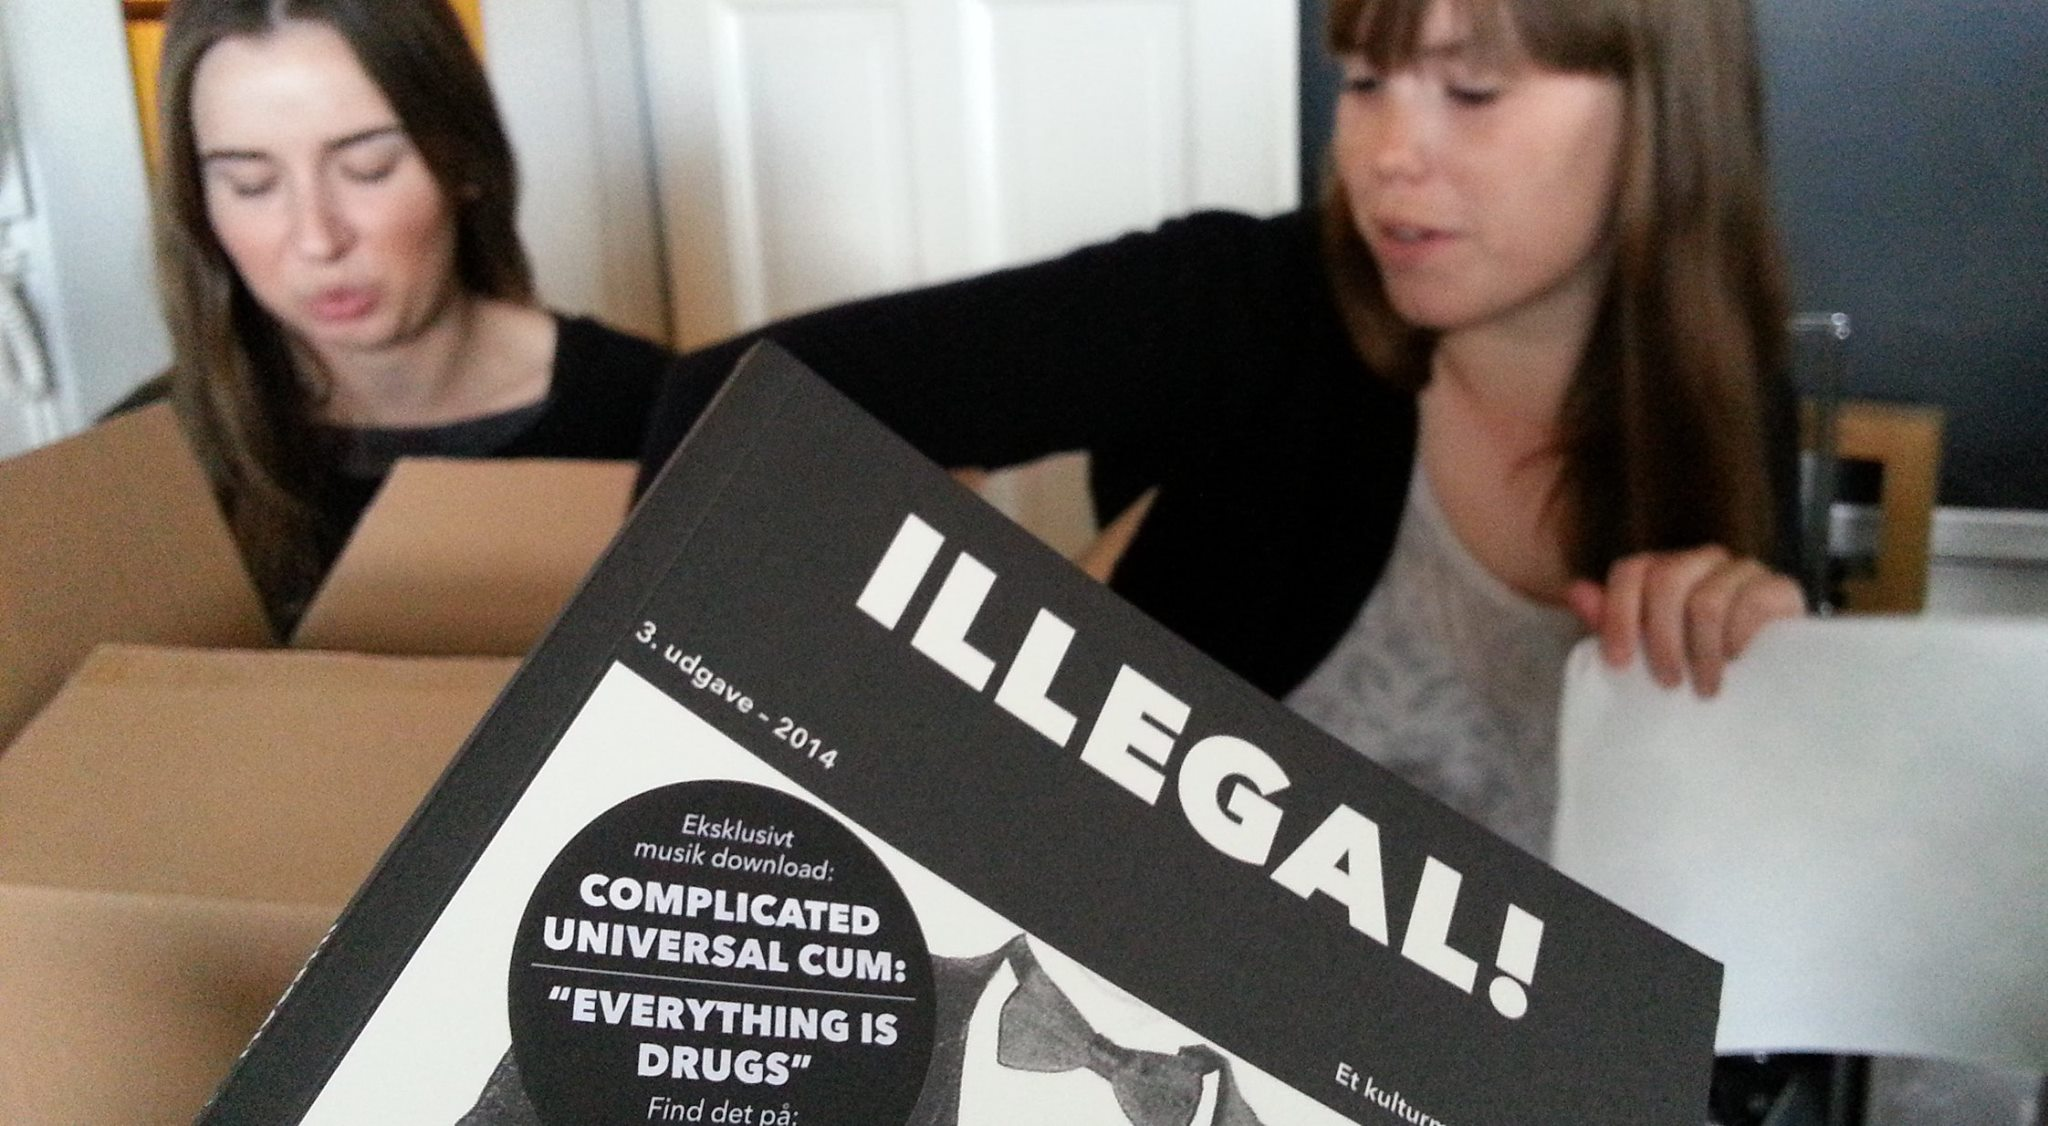 ILLEGAL! Magazine being prepared for launch